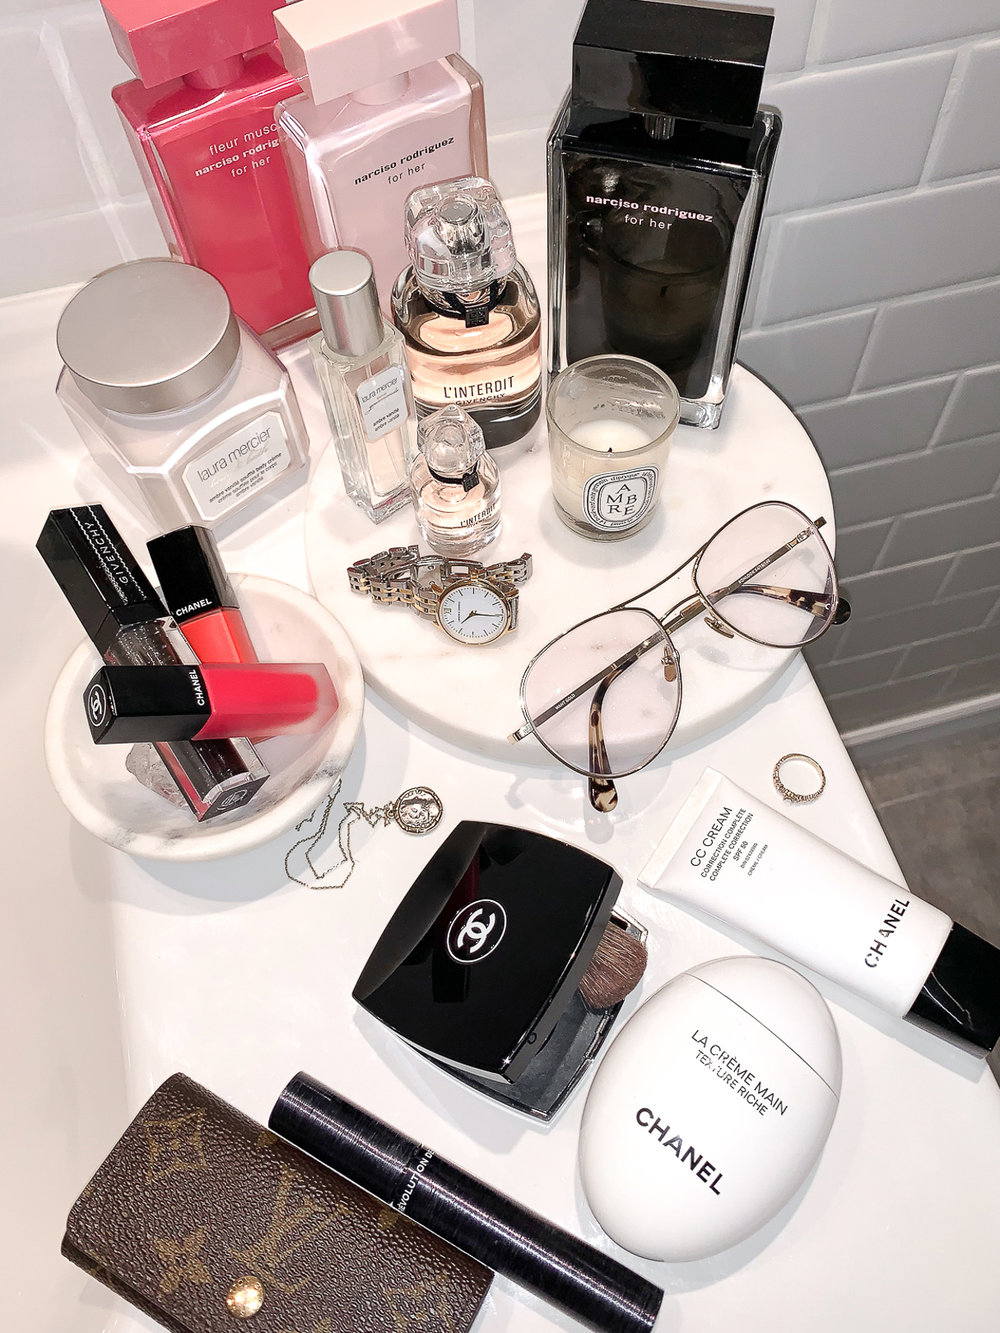 my topshelfie perfum collection - givenchy L'Interdit, NARCISO RODRIGUEZ for HER collection, Laura Mercier Ambre Vanille perfume, chanel, NARS, woahstyle.com_3437-2.jpg